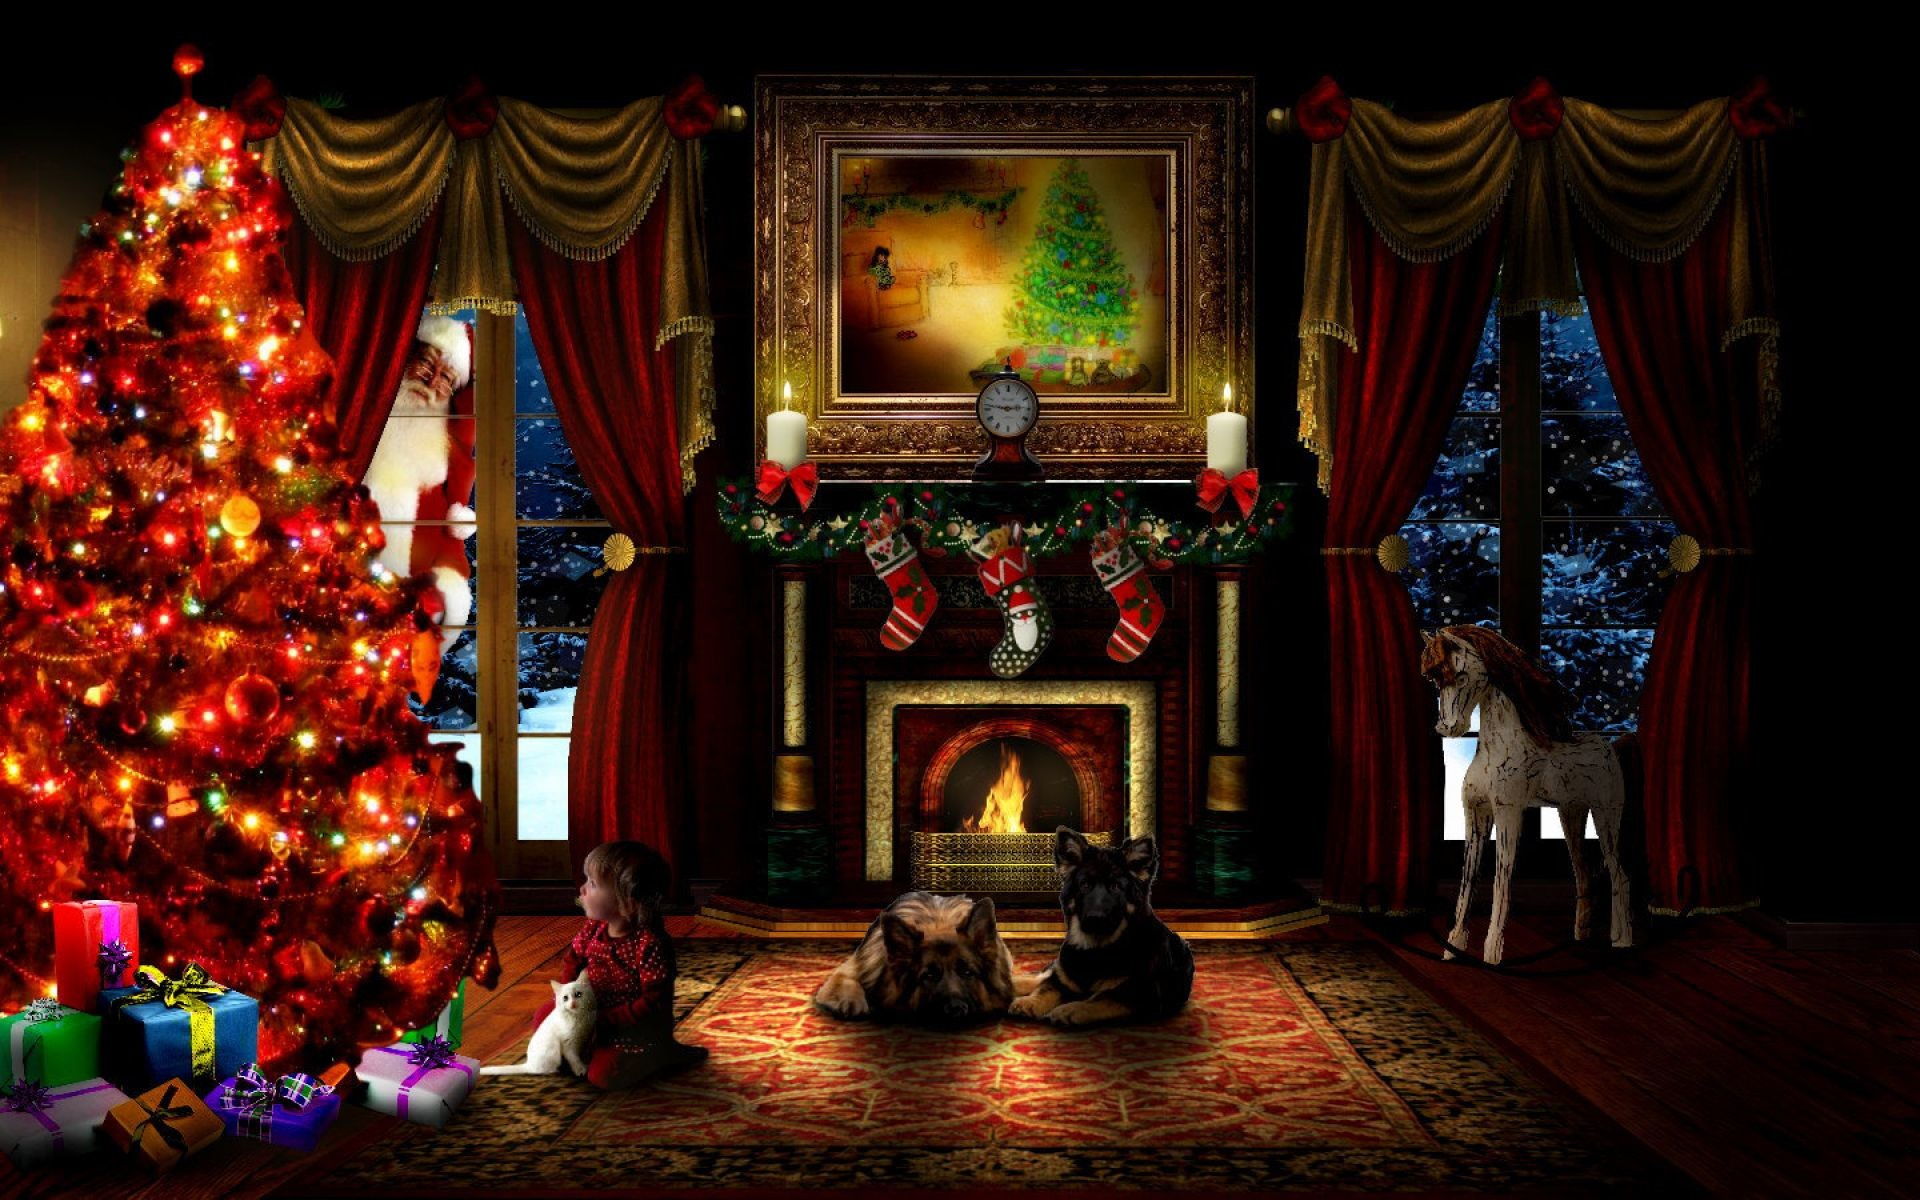 Christmas Evening With Pets | HD Christmas Wallpaper Free Download …